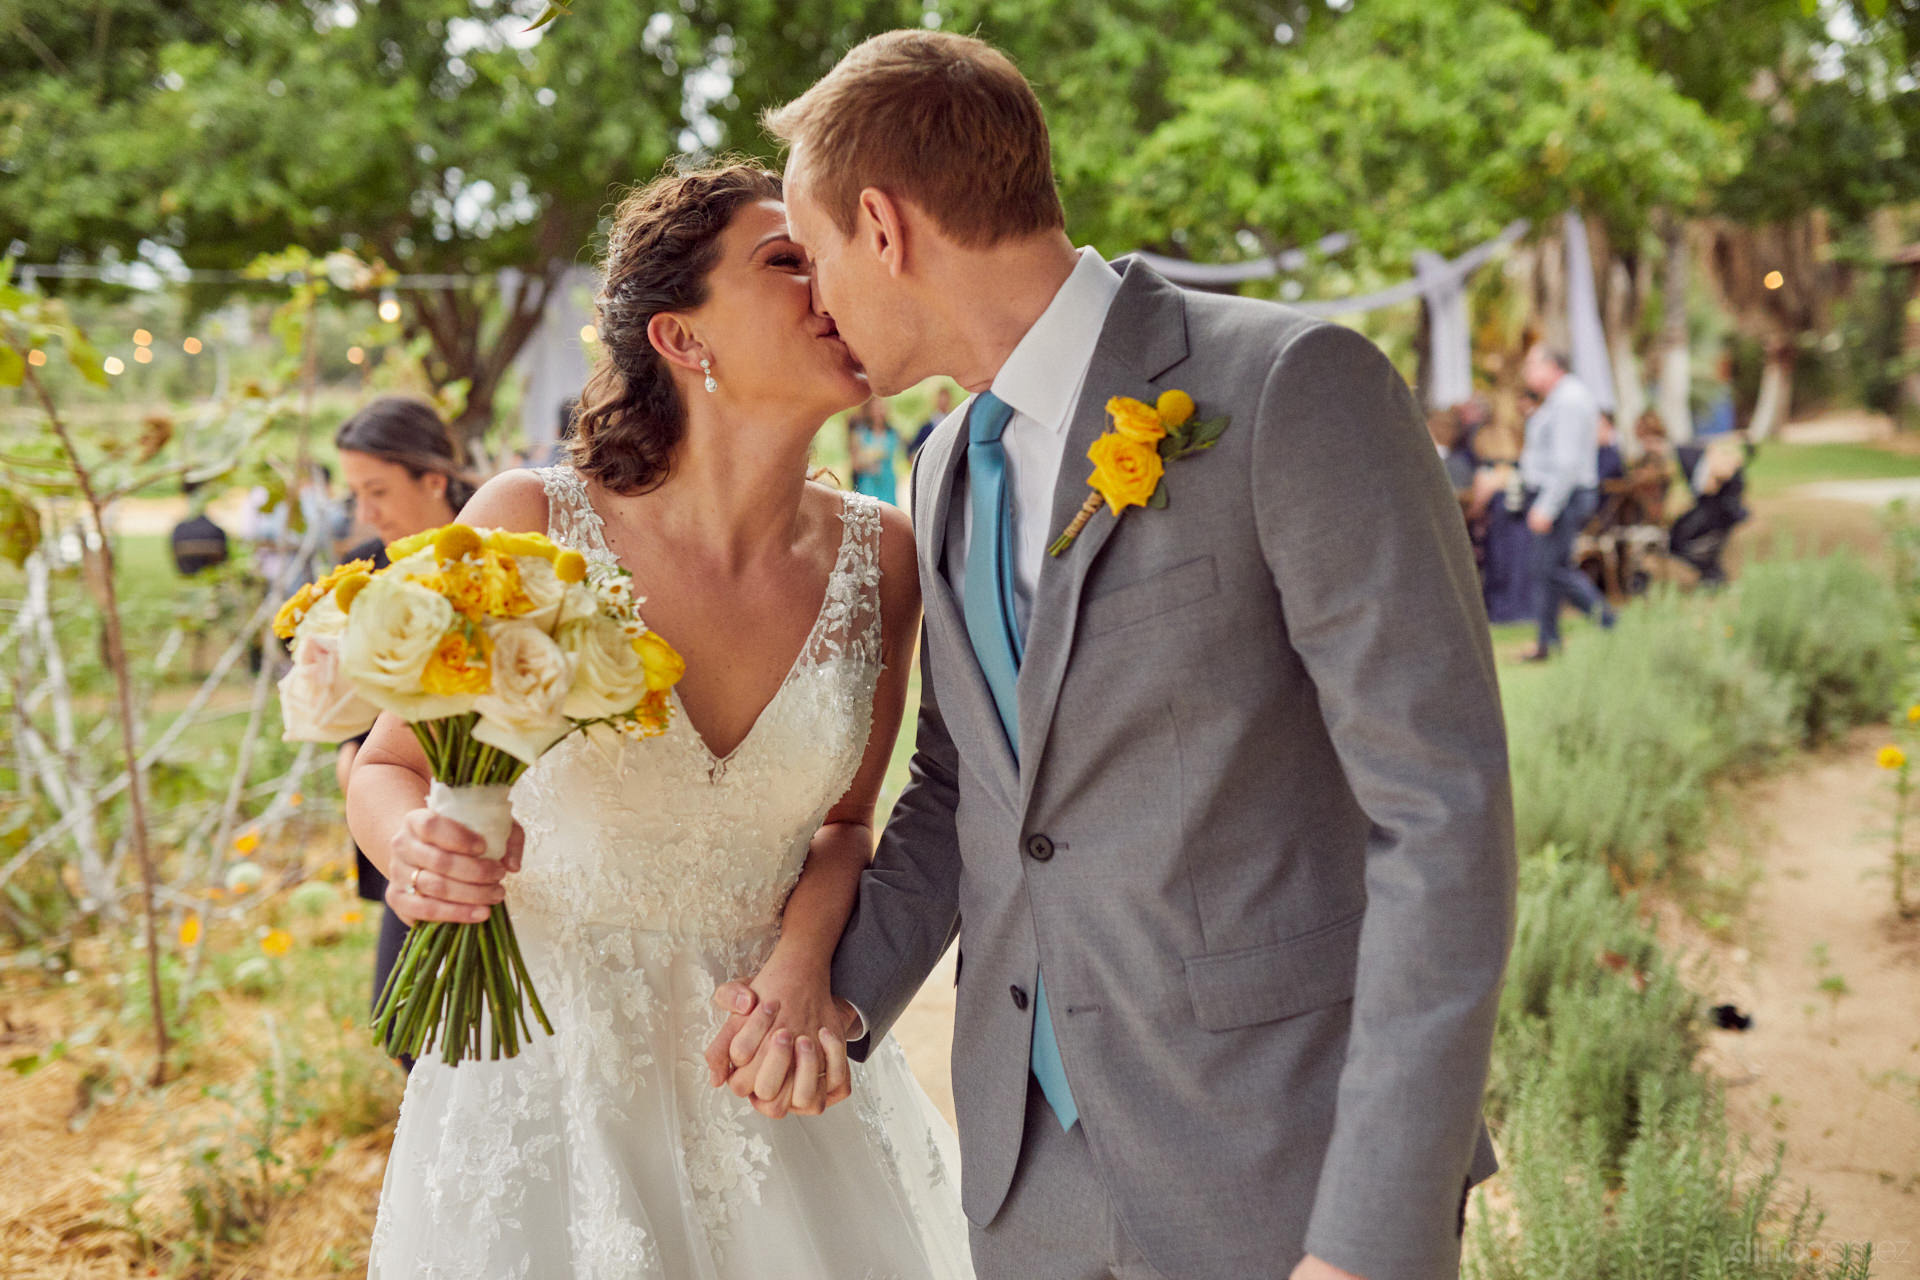 Destination Photographer In Cabo And Mexico - Hilary & Bryan Flora Wedding